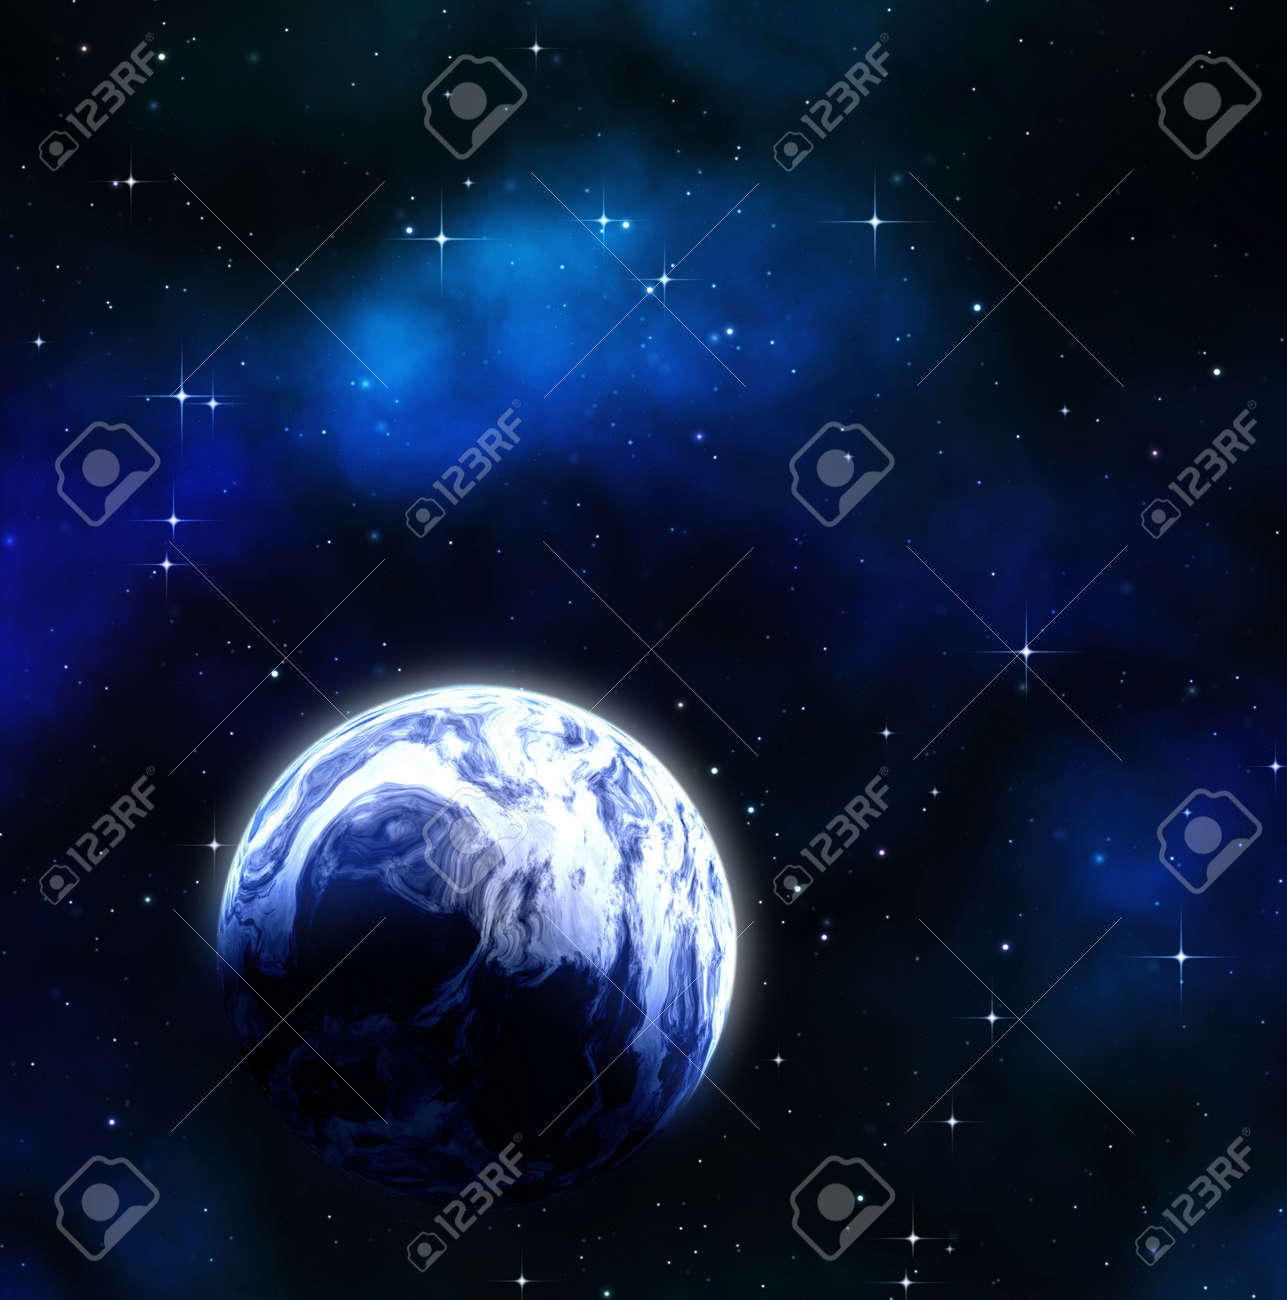 great image of a blue earth like planet in space Stock Photo - 5473632